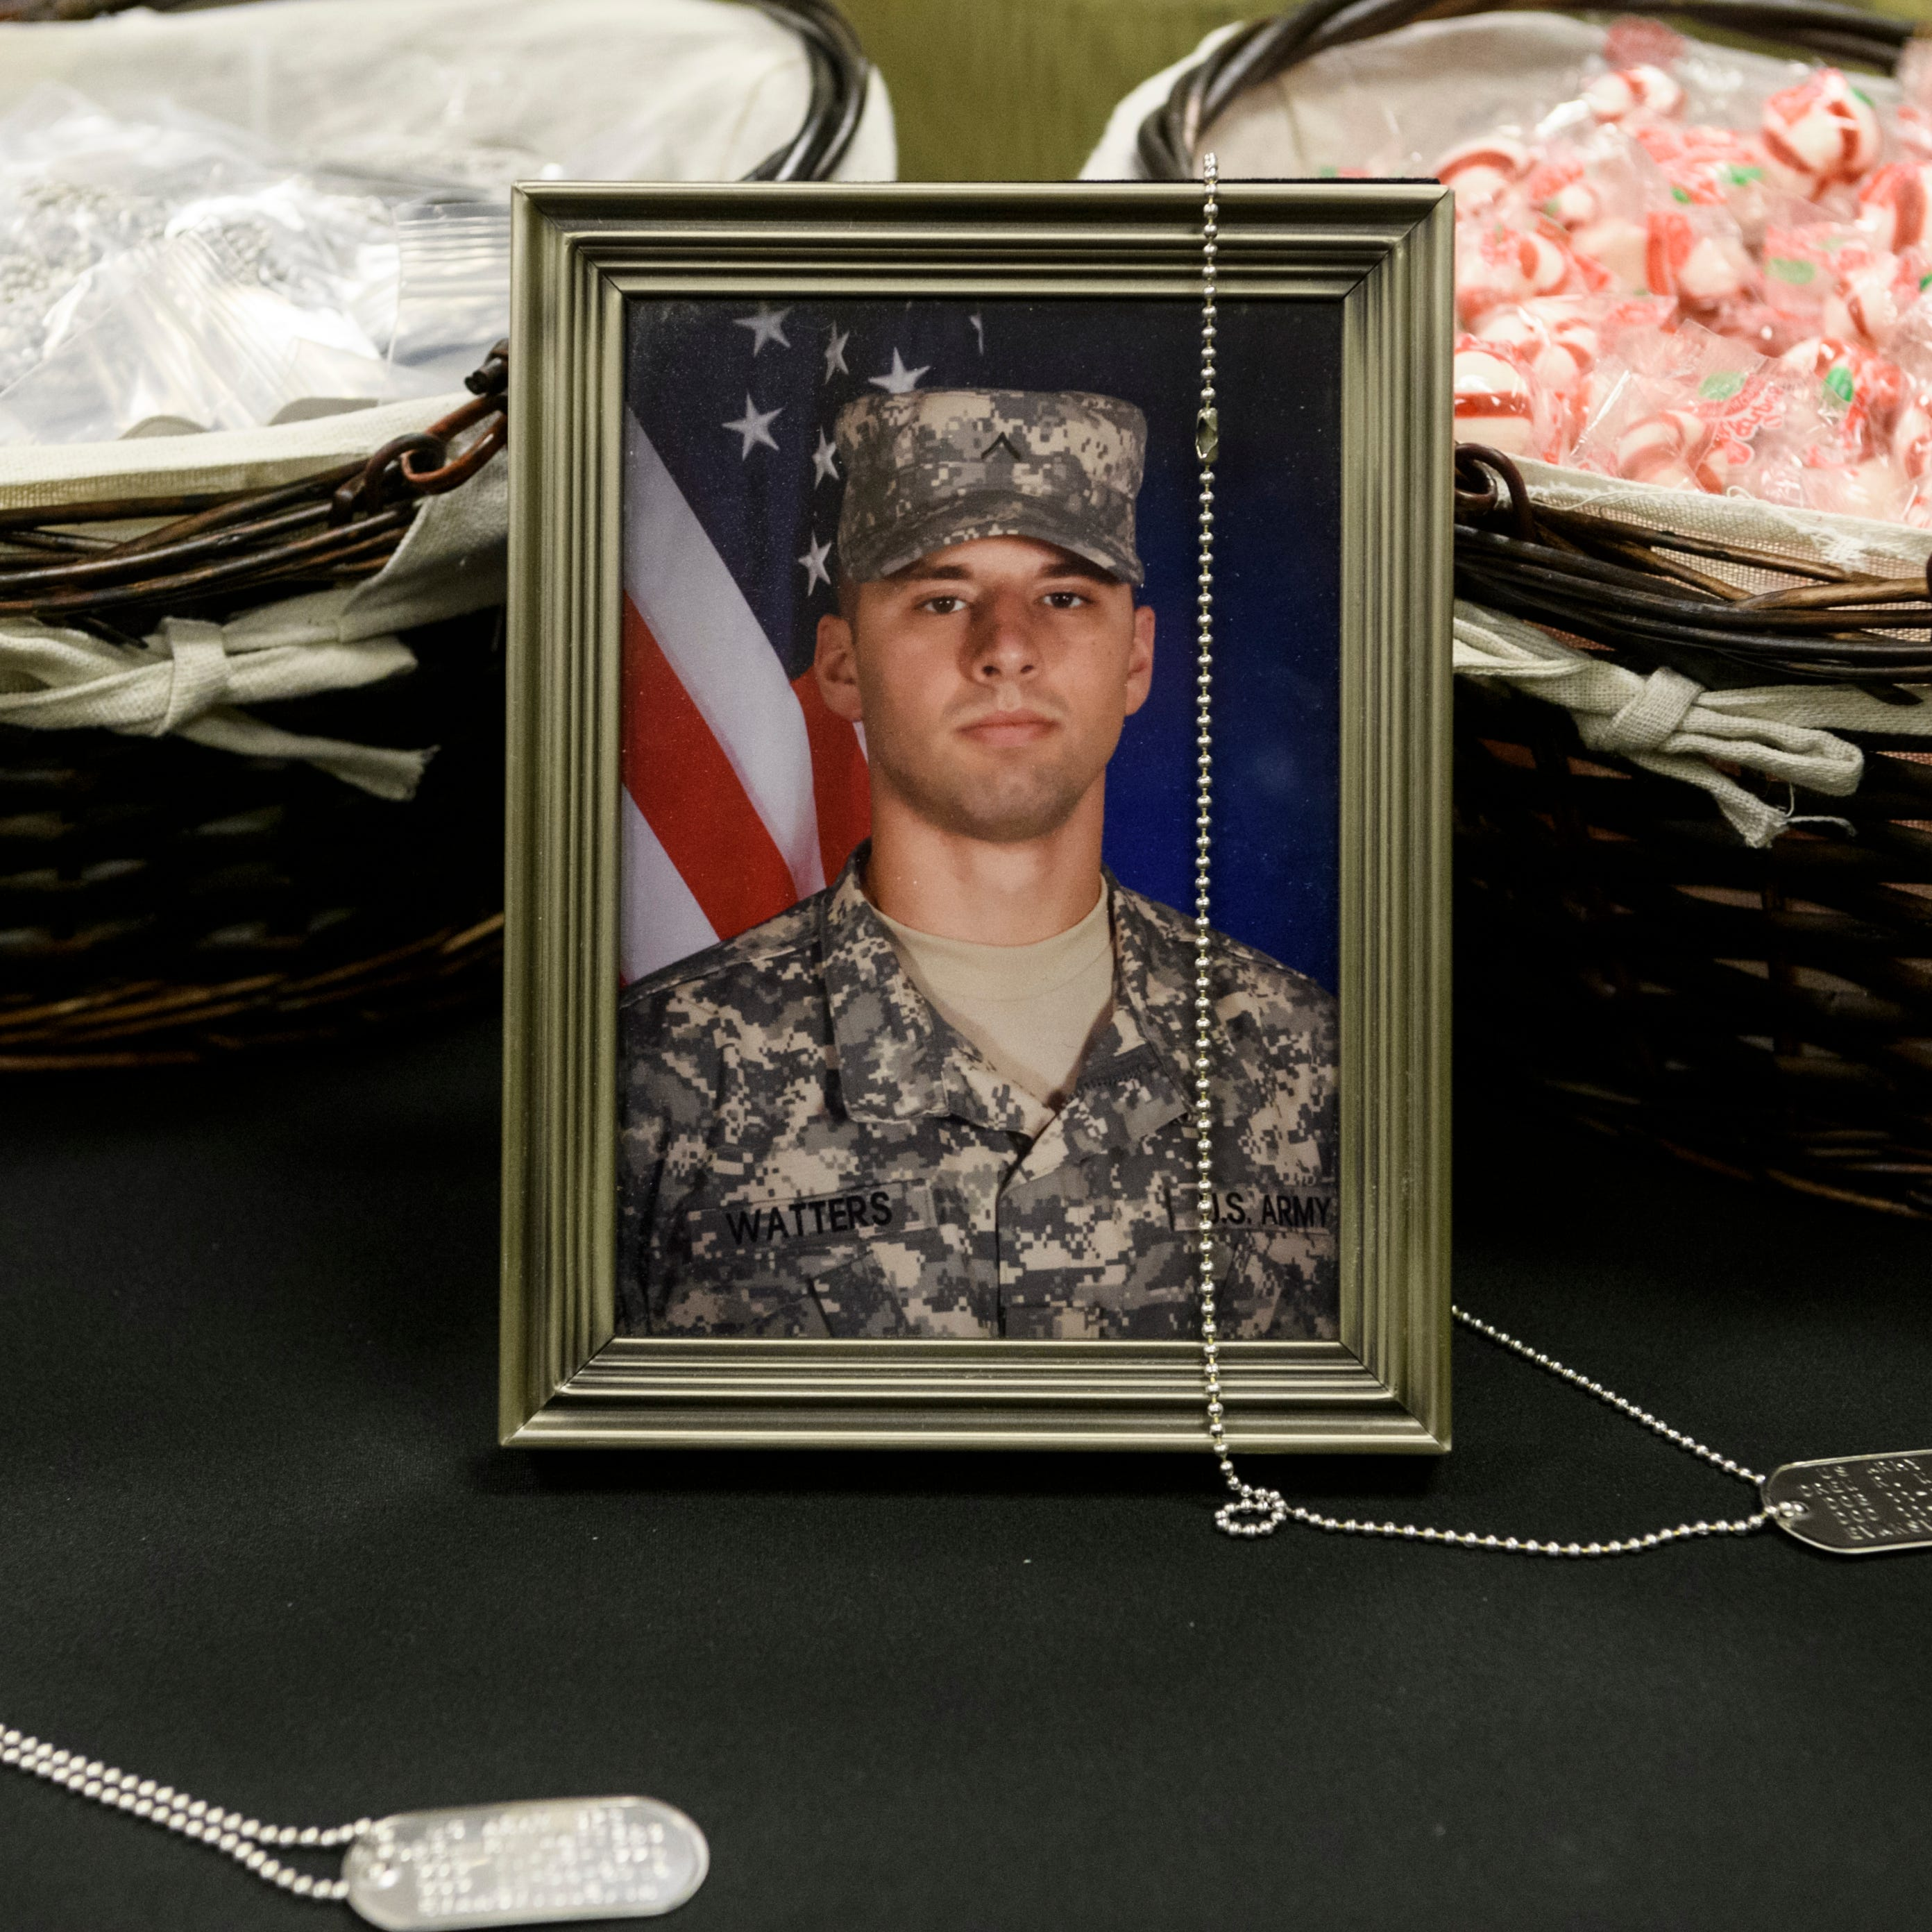 U.S. Army Sgt. Drew Watters of Evansville remembered as having zest for life